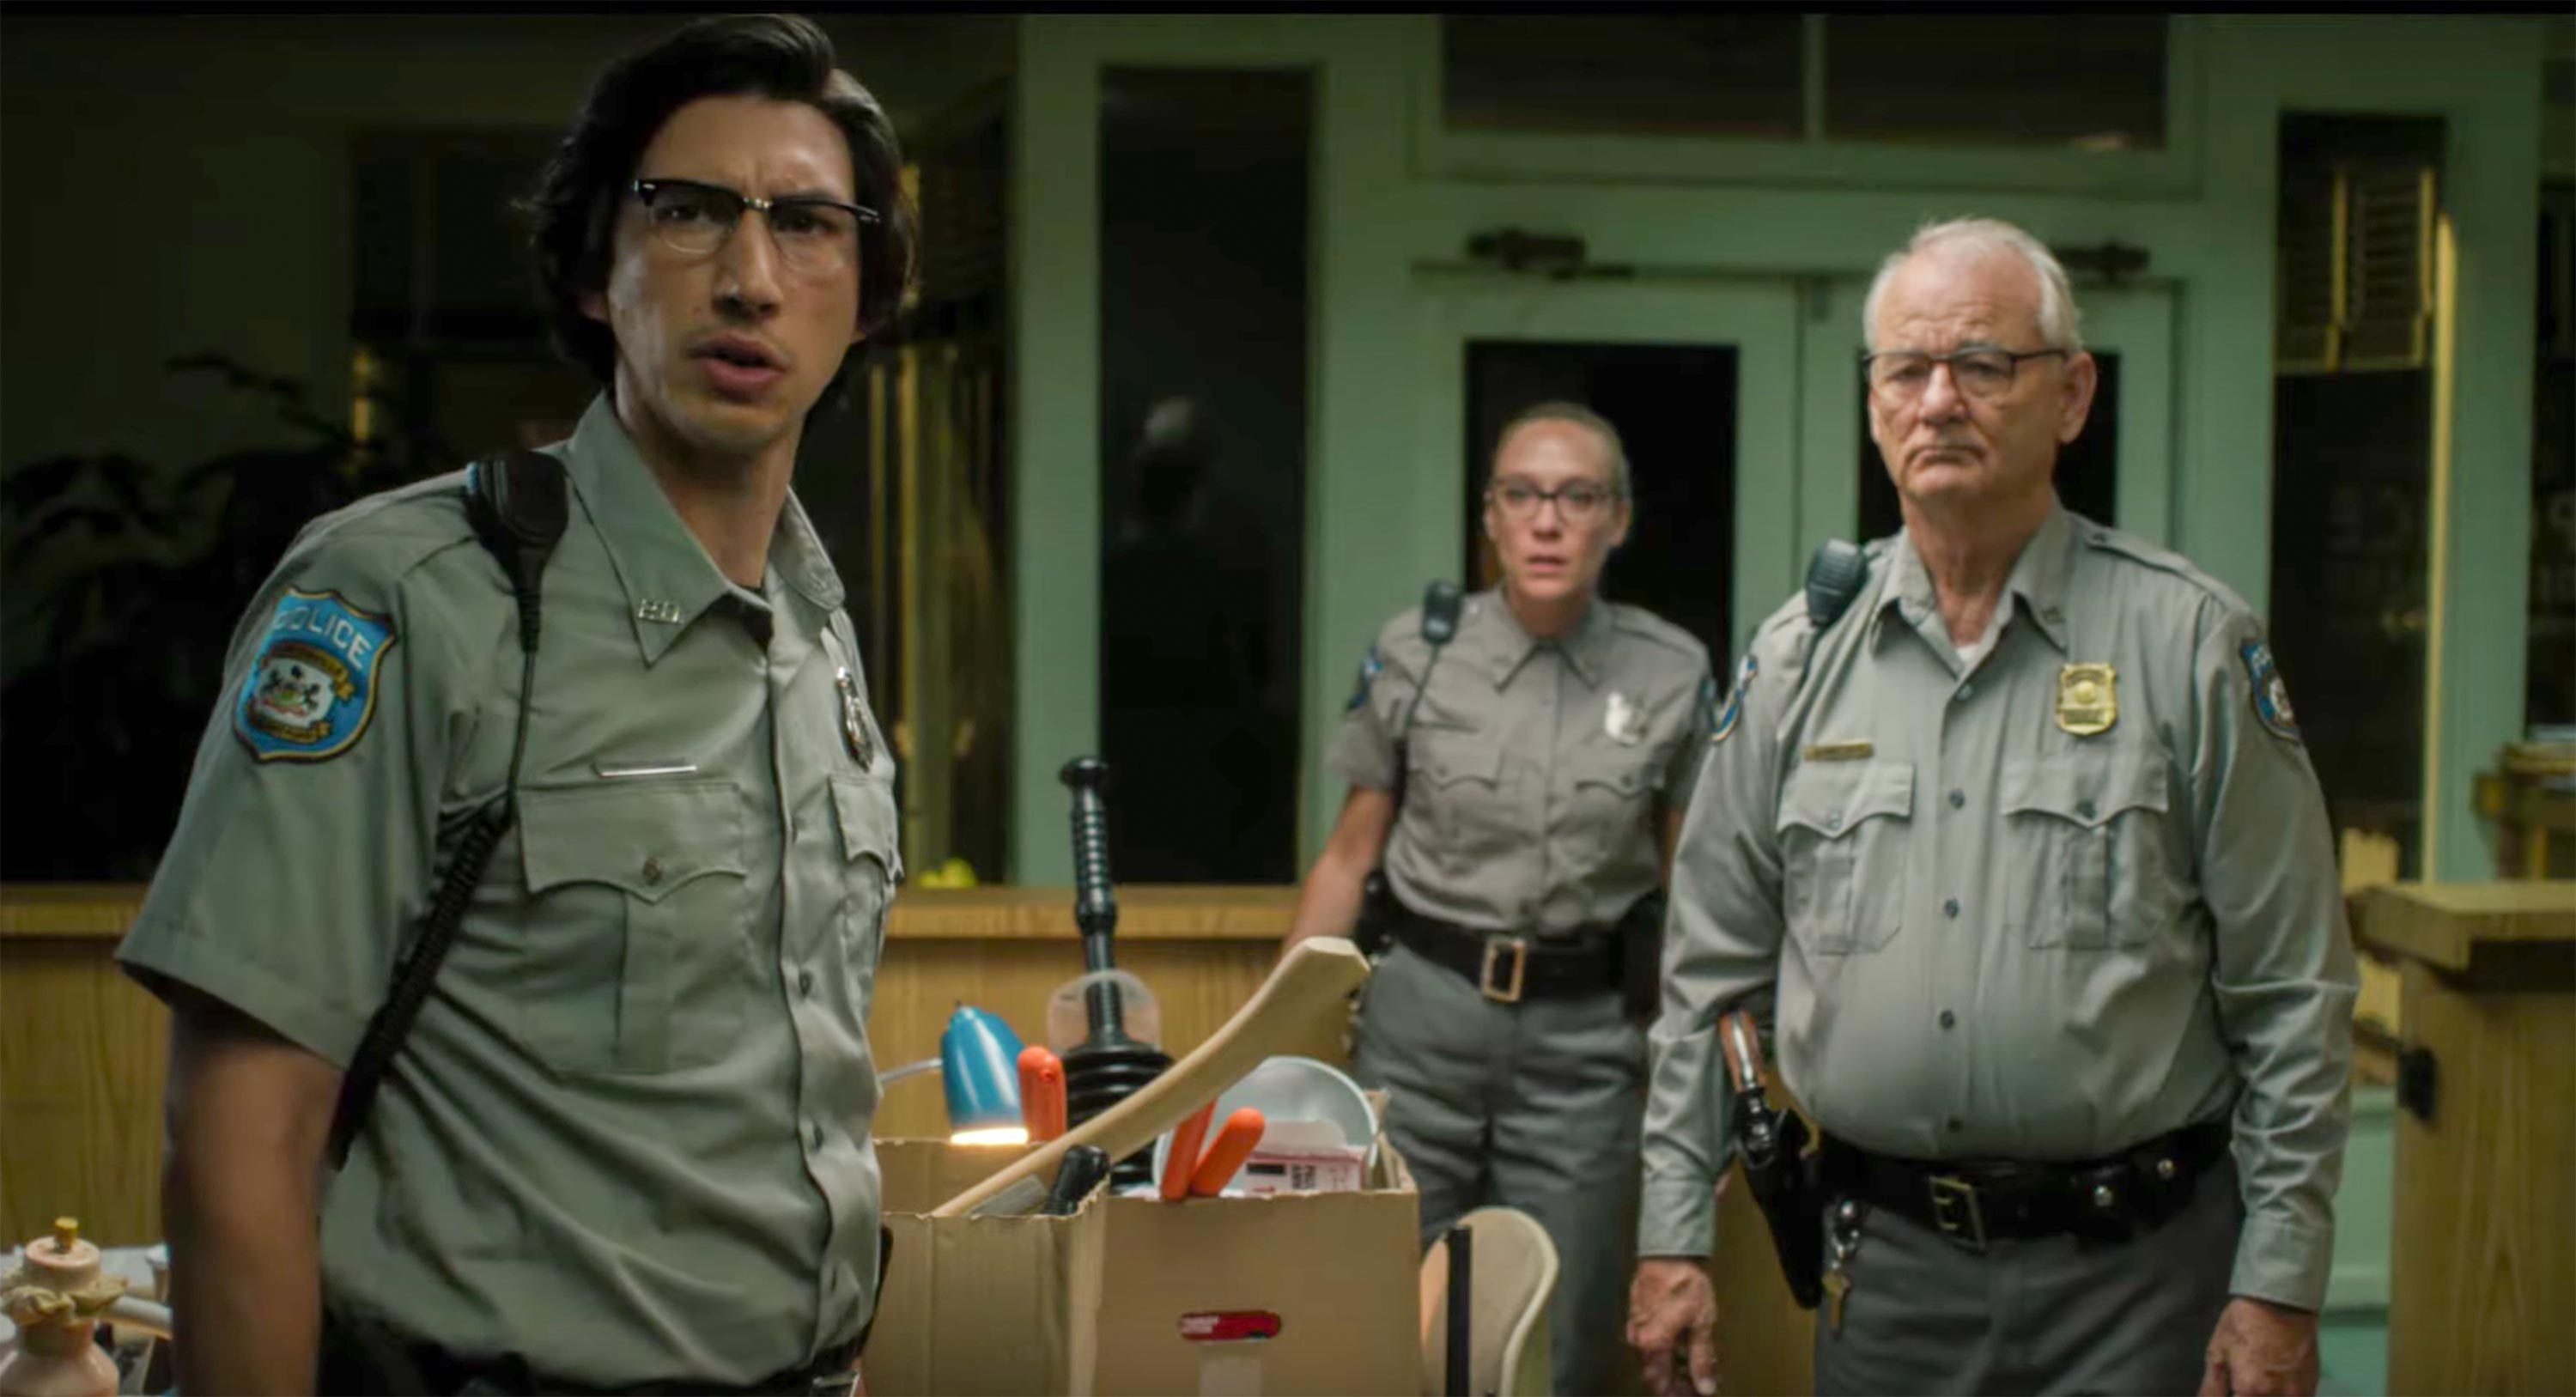 Jim Jarmusch's The Dead Don't Die, with Adam Driver and Bill Murray